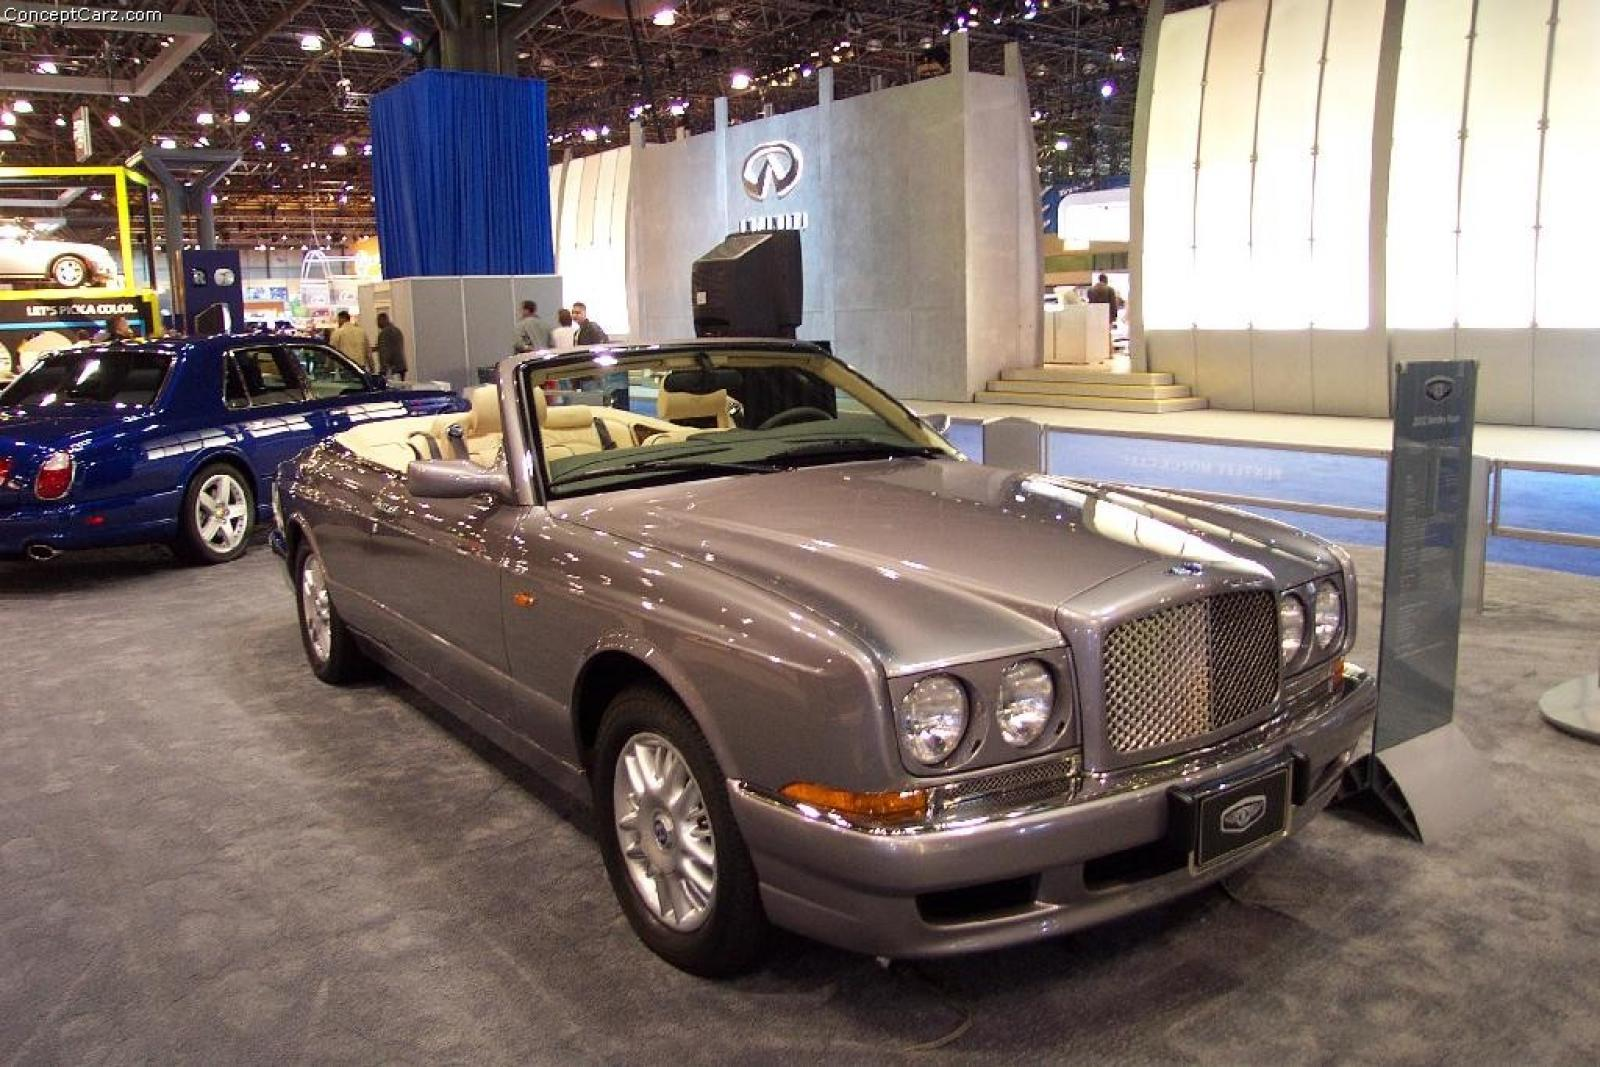 kingdom sourcing for bentley classic mulliner miles cars group sale in car classifieds london united azure new from impeccable